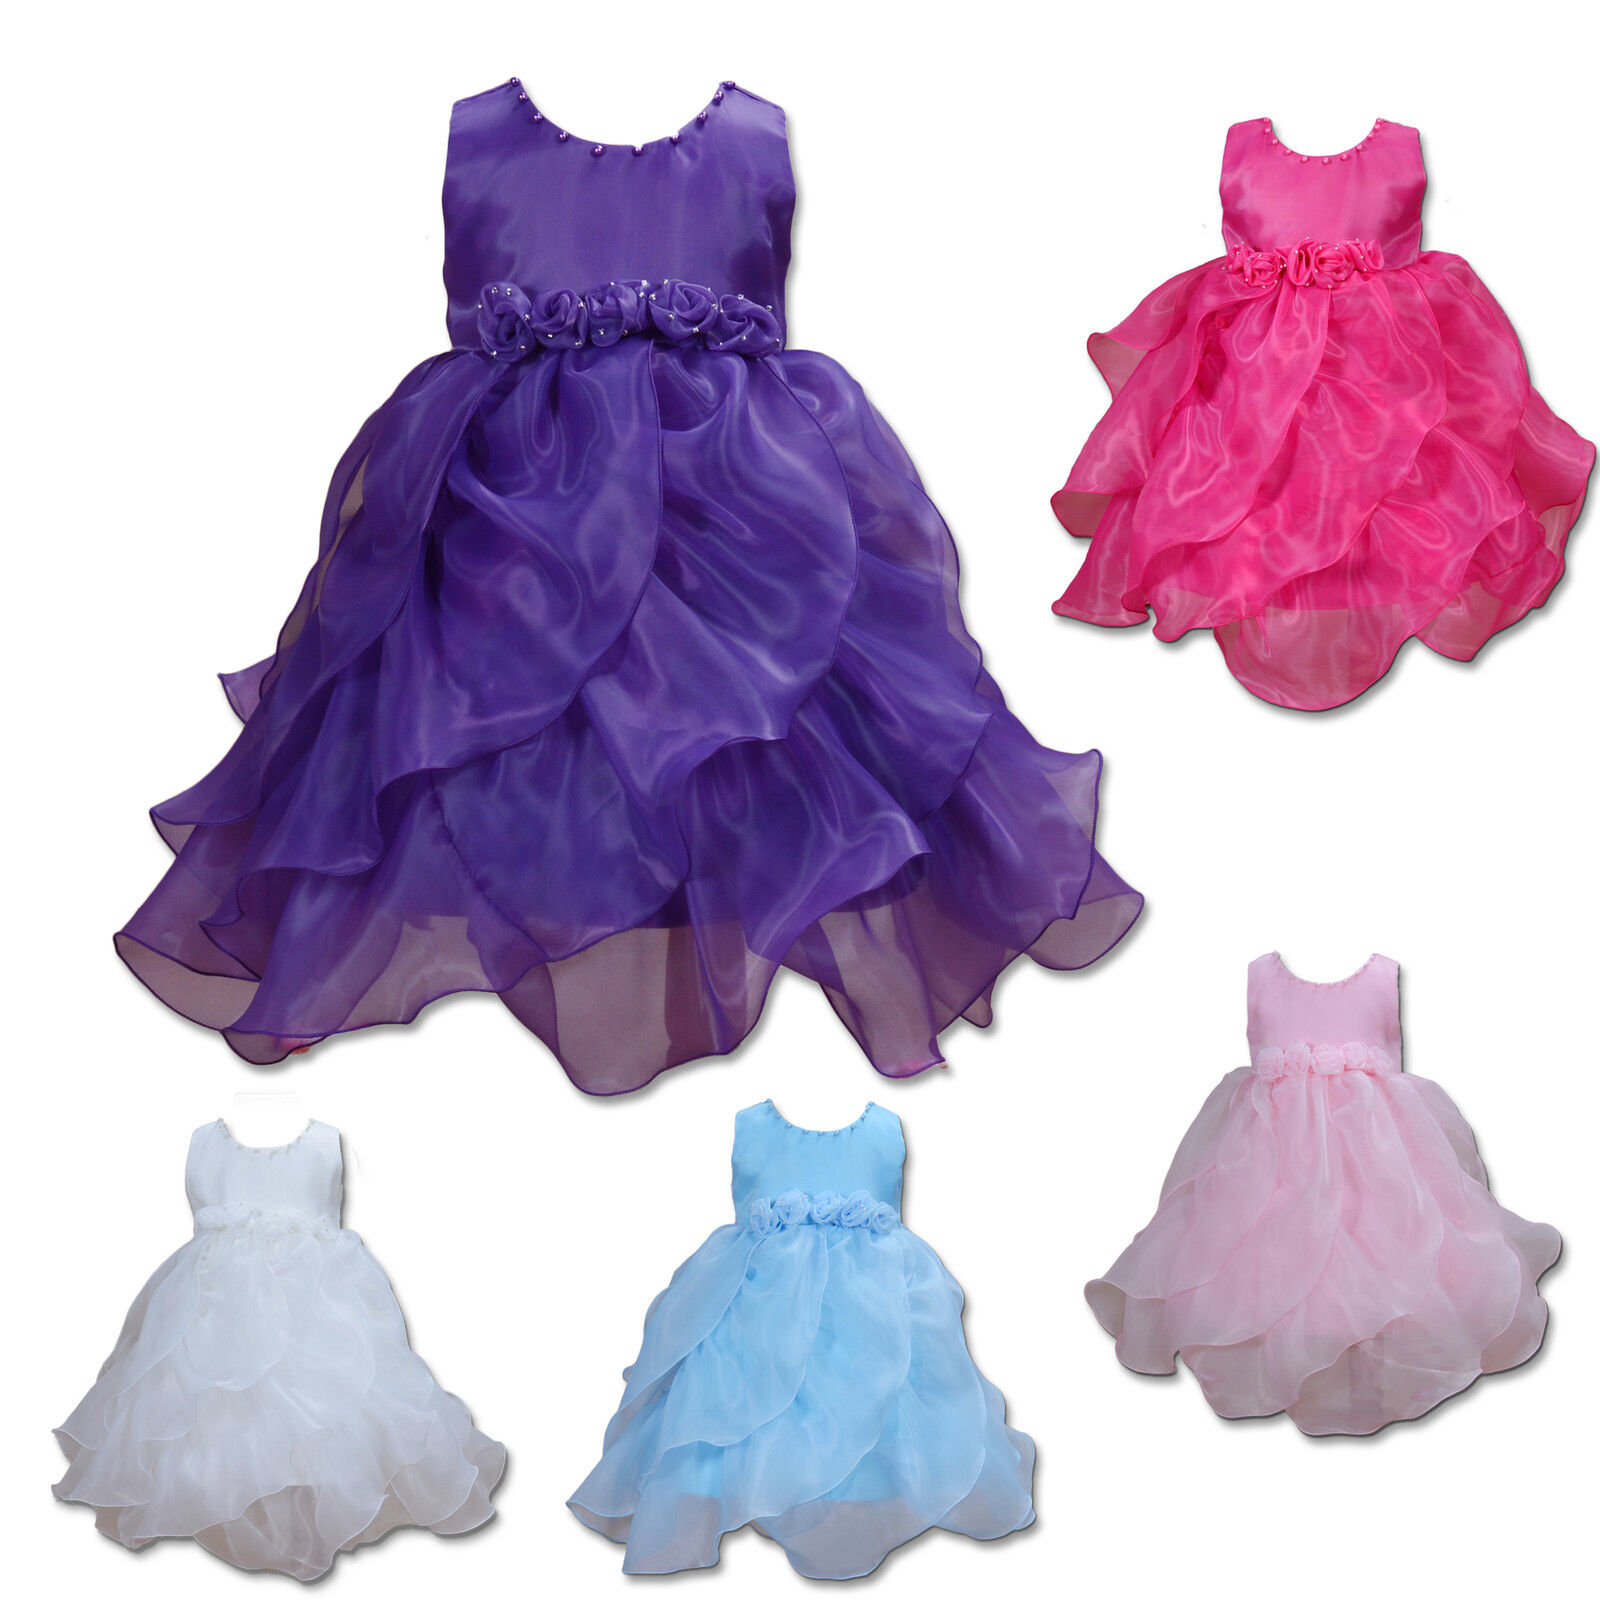 Flower Girl Bridesmaid Dress in Pink,Hot Pink,Blue,Purple,Ivory 12M to 6 Years